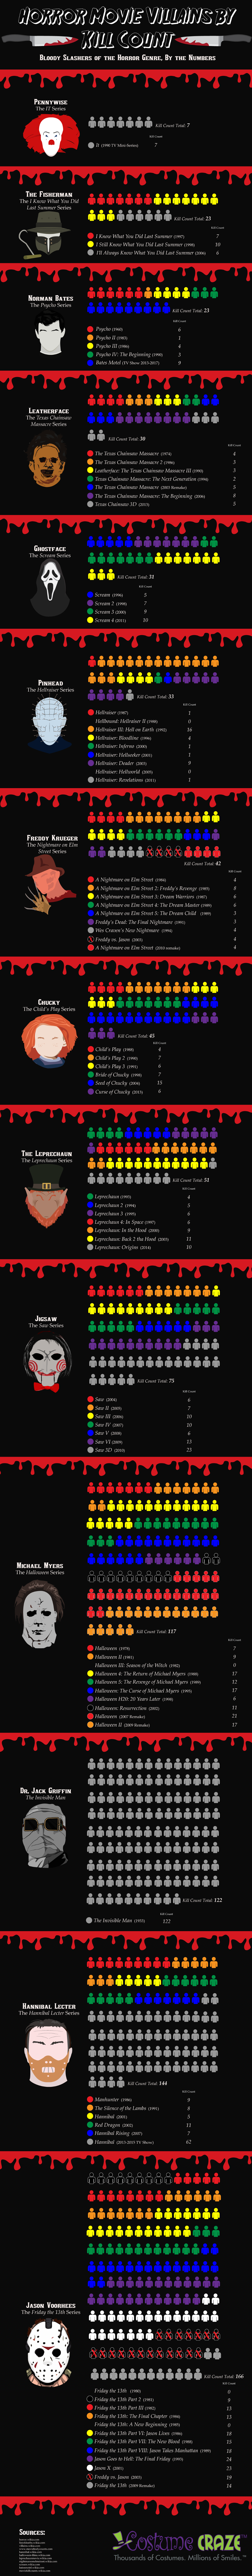 Slaughter Statistics in Horror Movies: And the Winning Villain Is… - Infographic